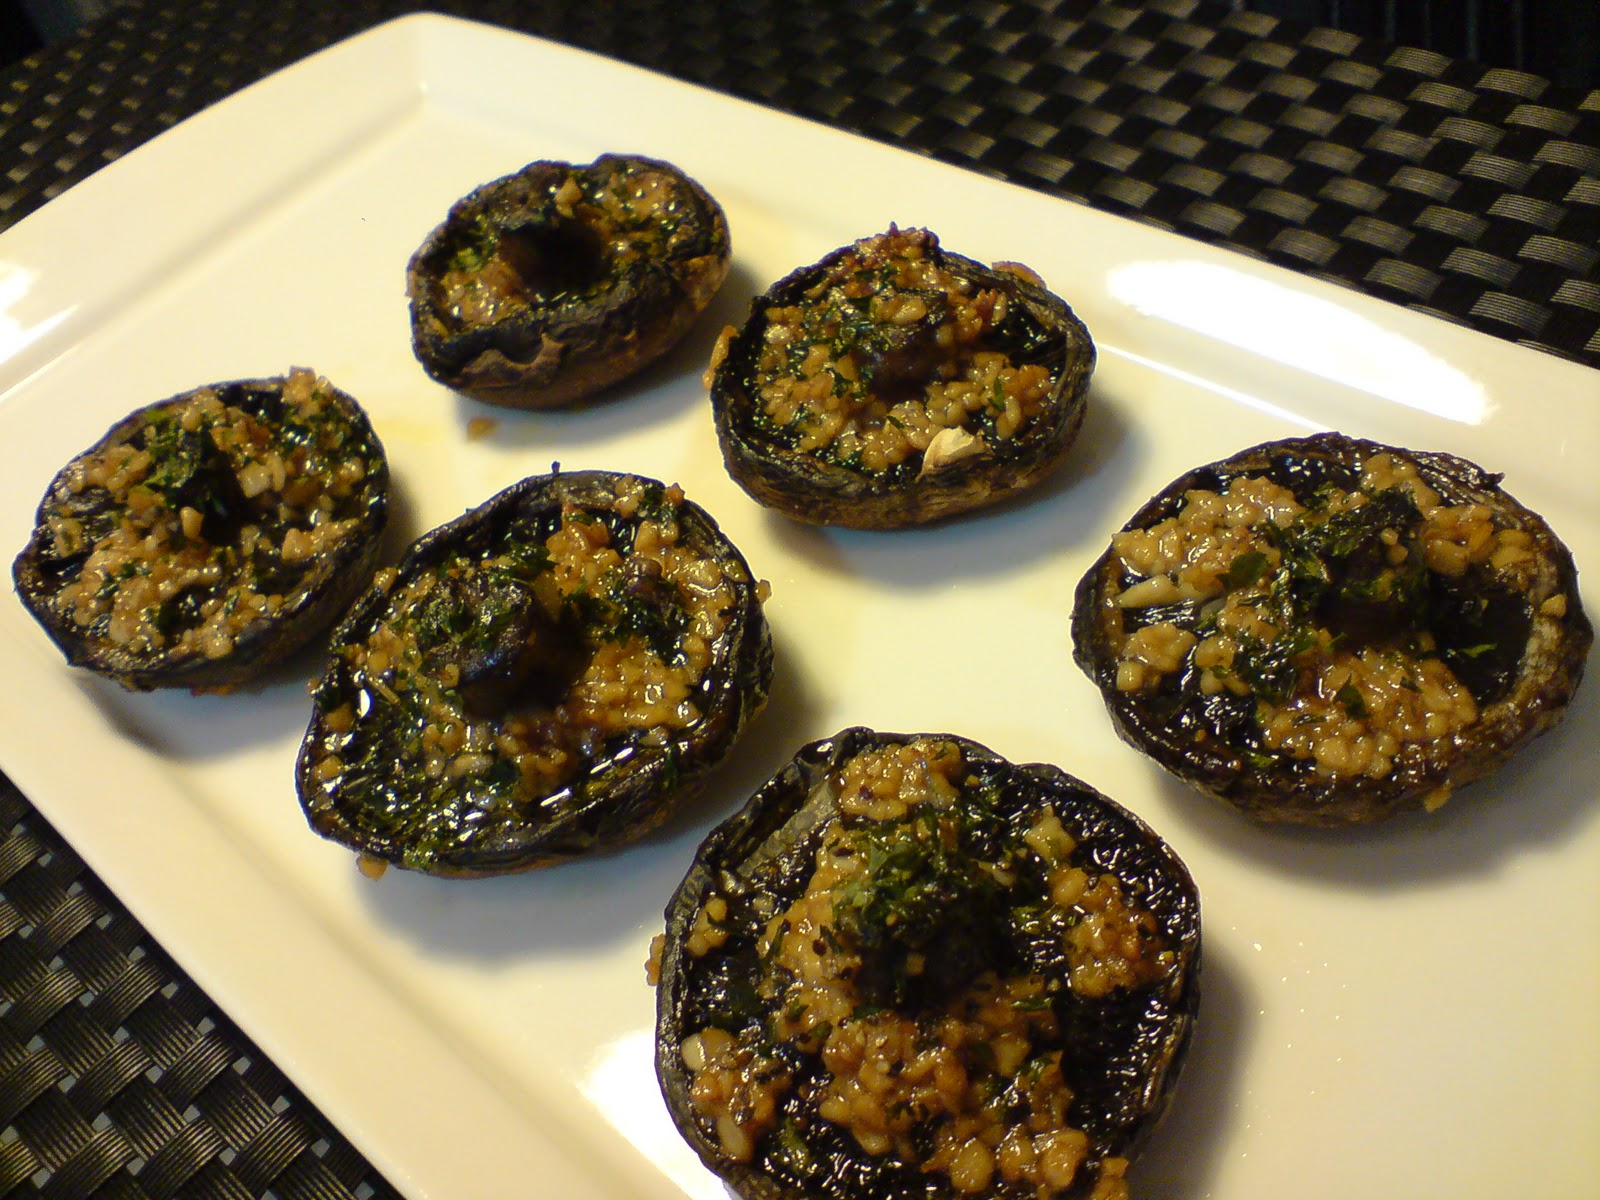 Grilled Portobello Mushroom with Garlic, Butter and Parsley | Shan's ...